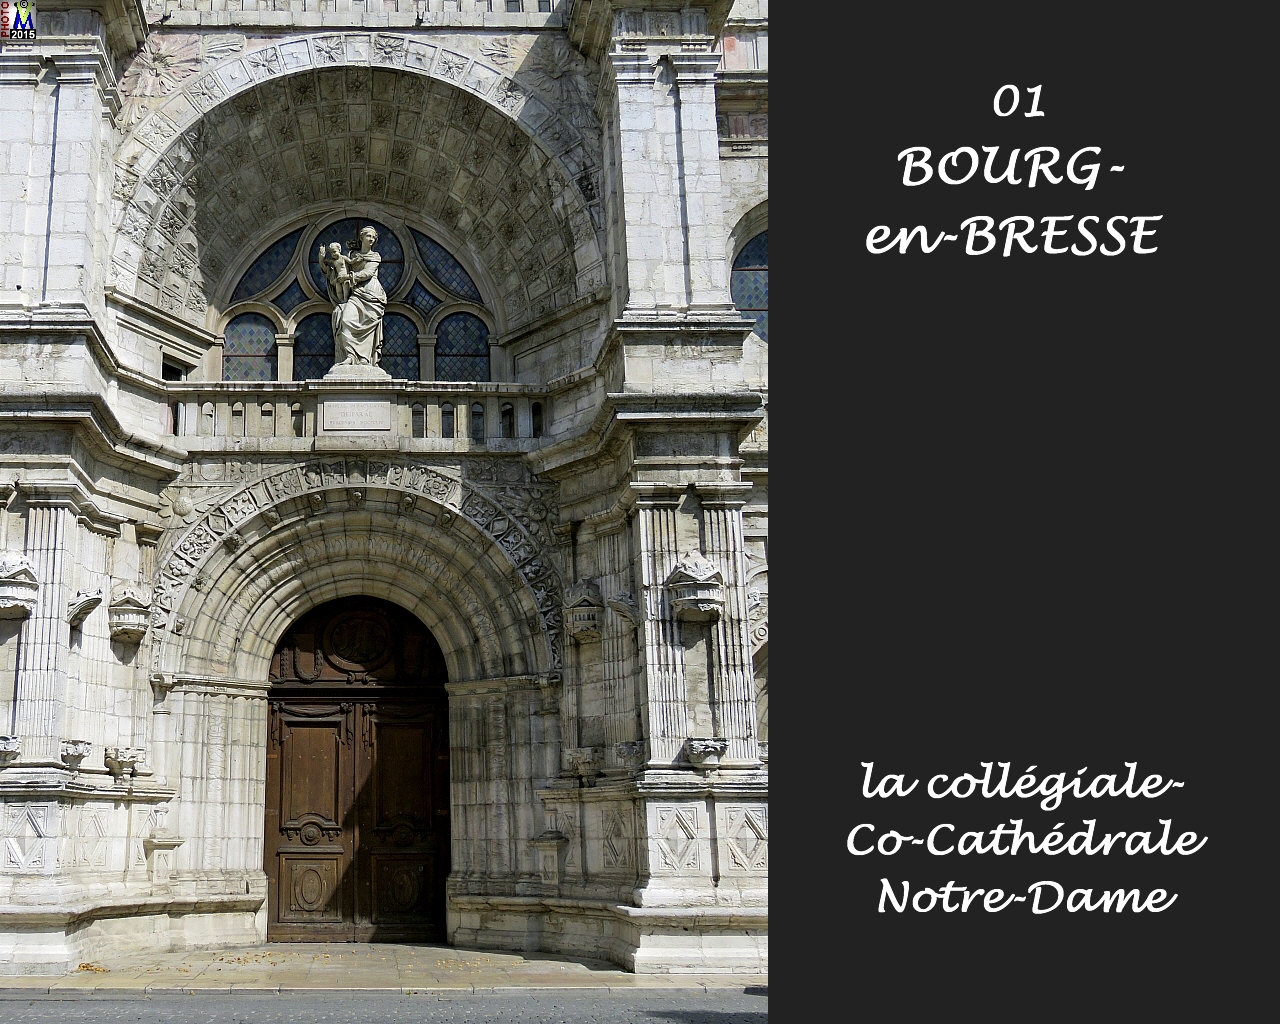 01BOURG-BRESSE_cathedrale_120.jpg